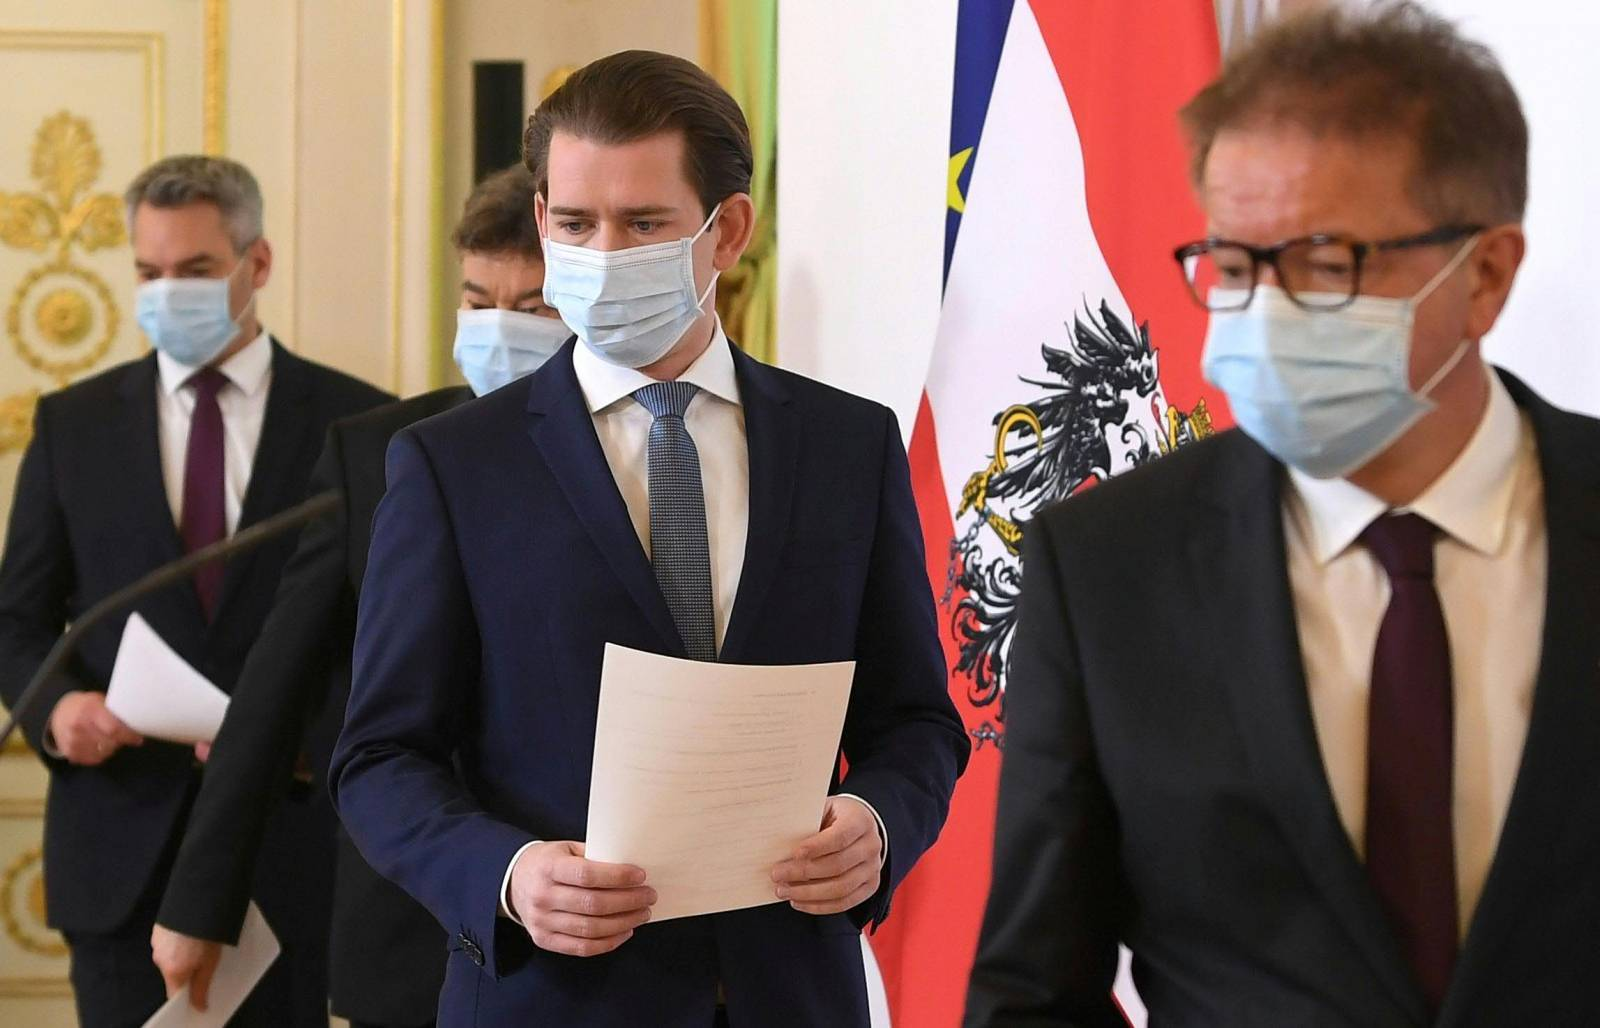 Austrian Chancellor Sebastian Kurz and Ministers arrive for a news conference in Vienna